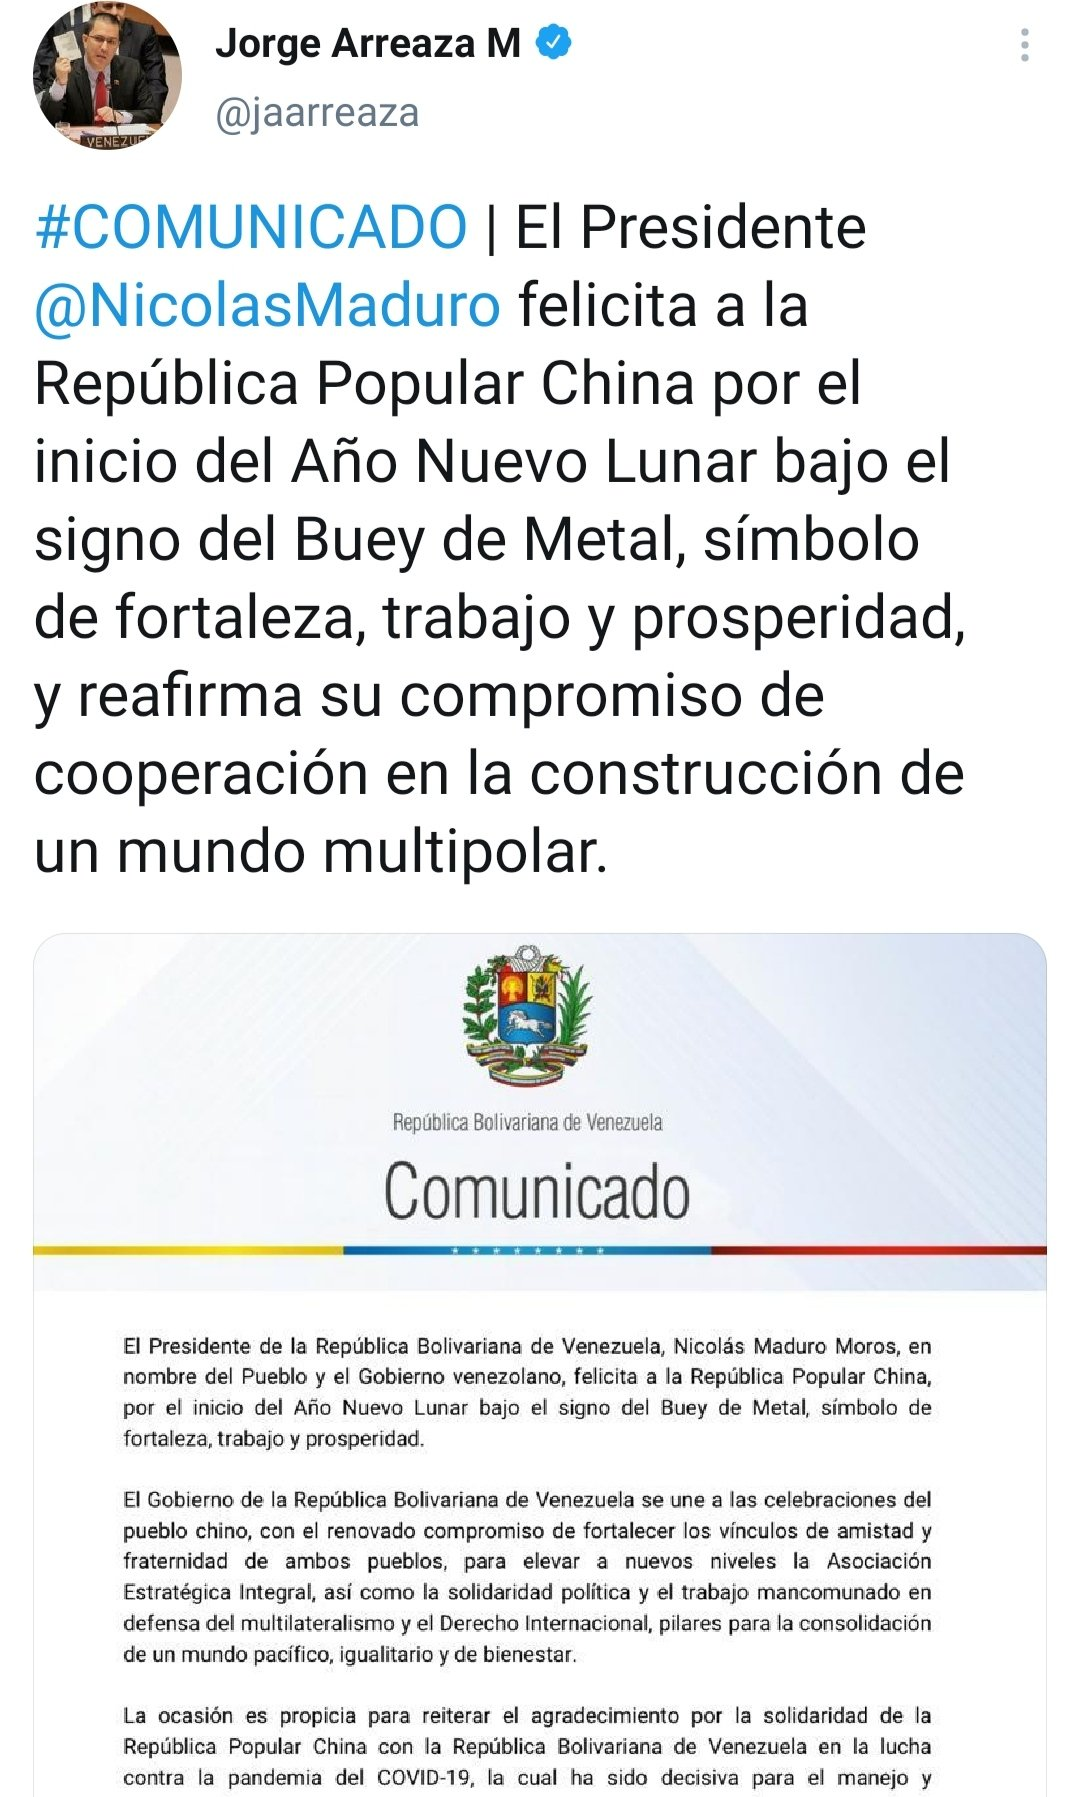 Cancillería Venezuela On Twitter Communiqué Pres Nicolasmaduro Congratulates The People S Republic Of China On The Beginning Of The Lunar New Year Under The Sign Of The Metal Ox A Symbol